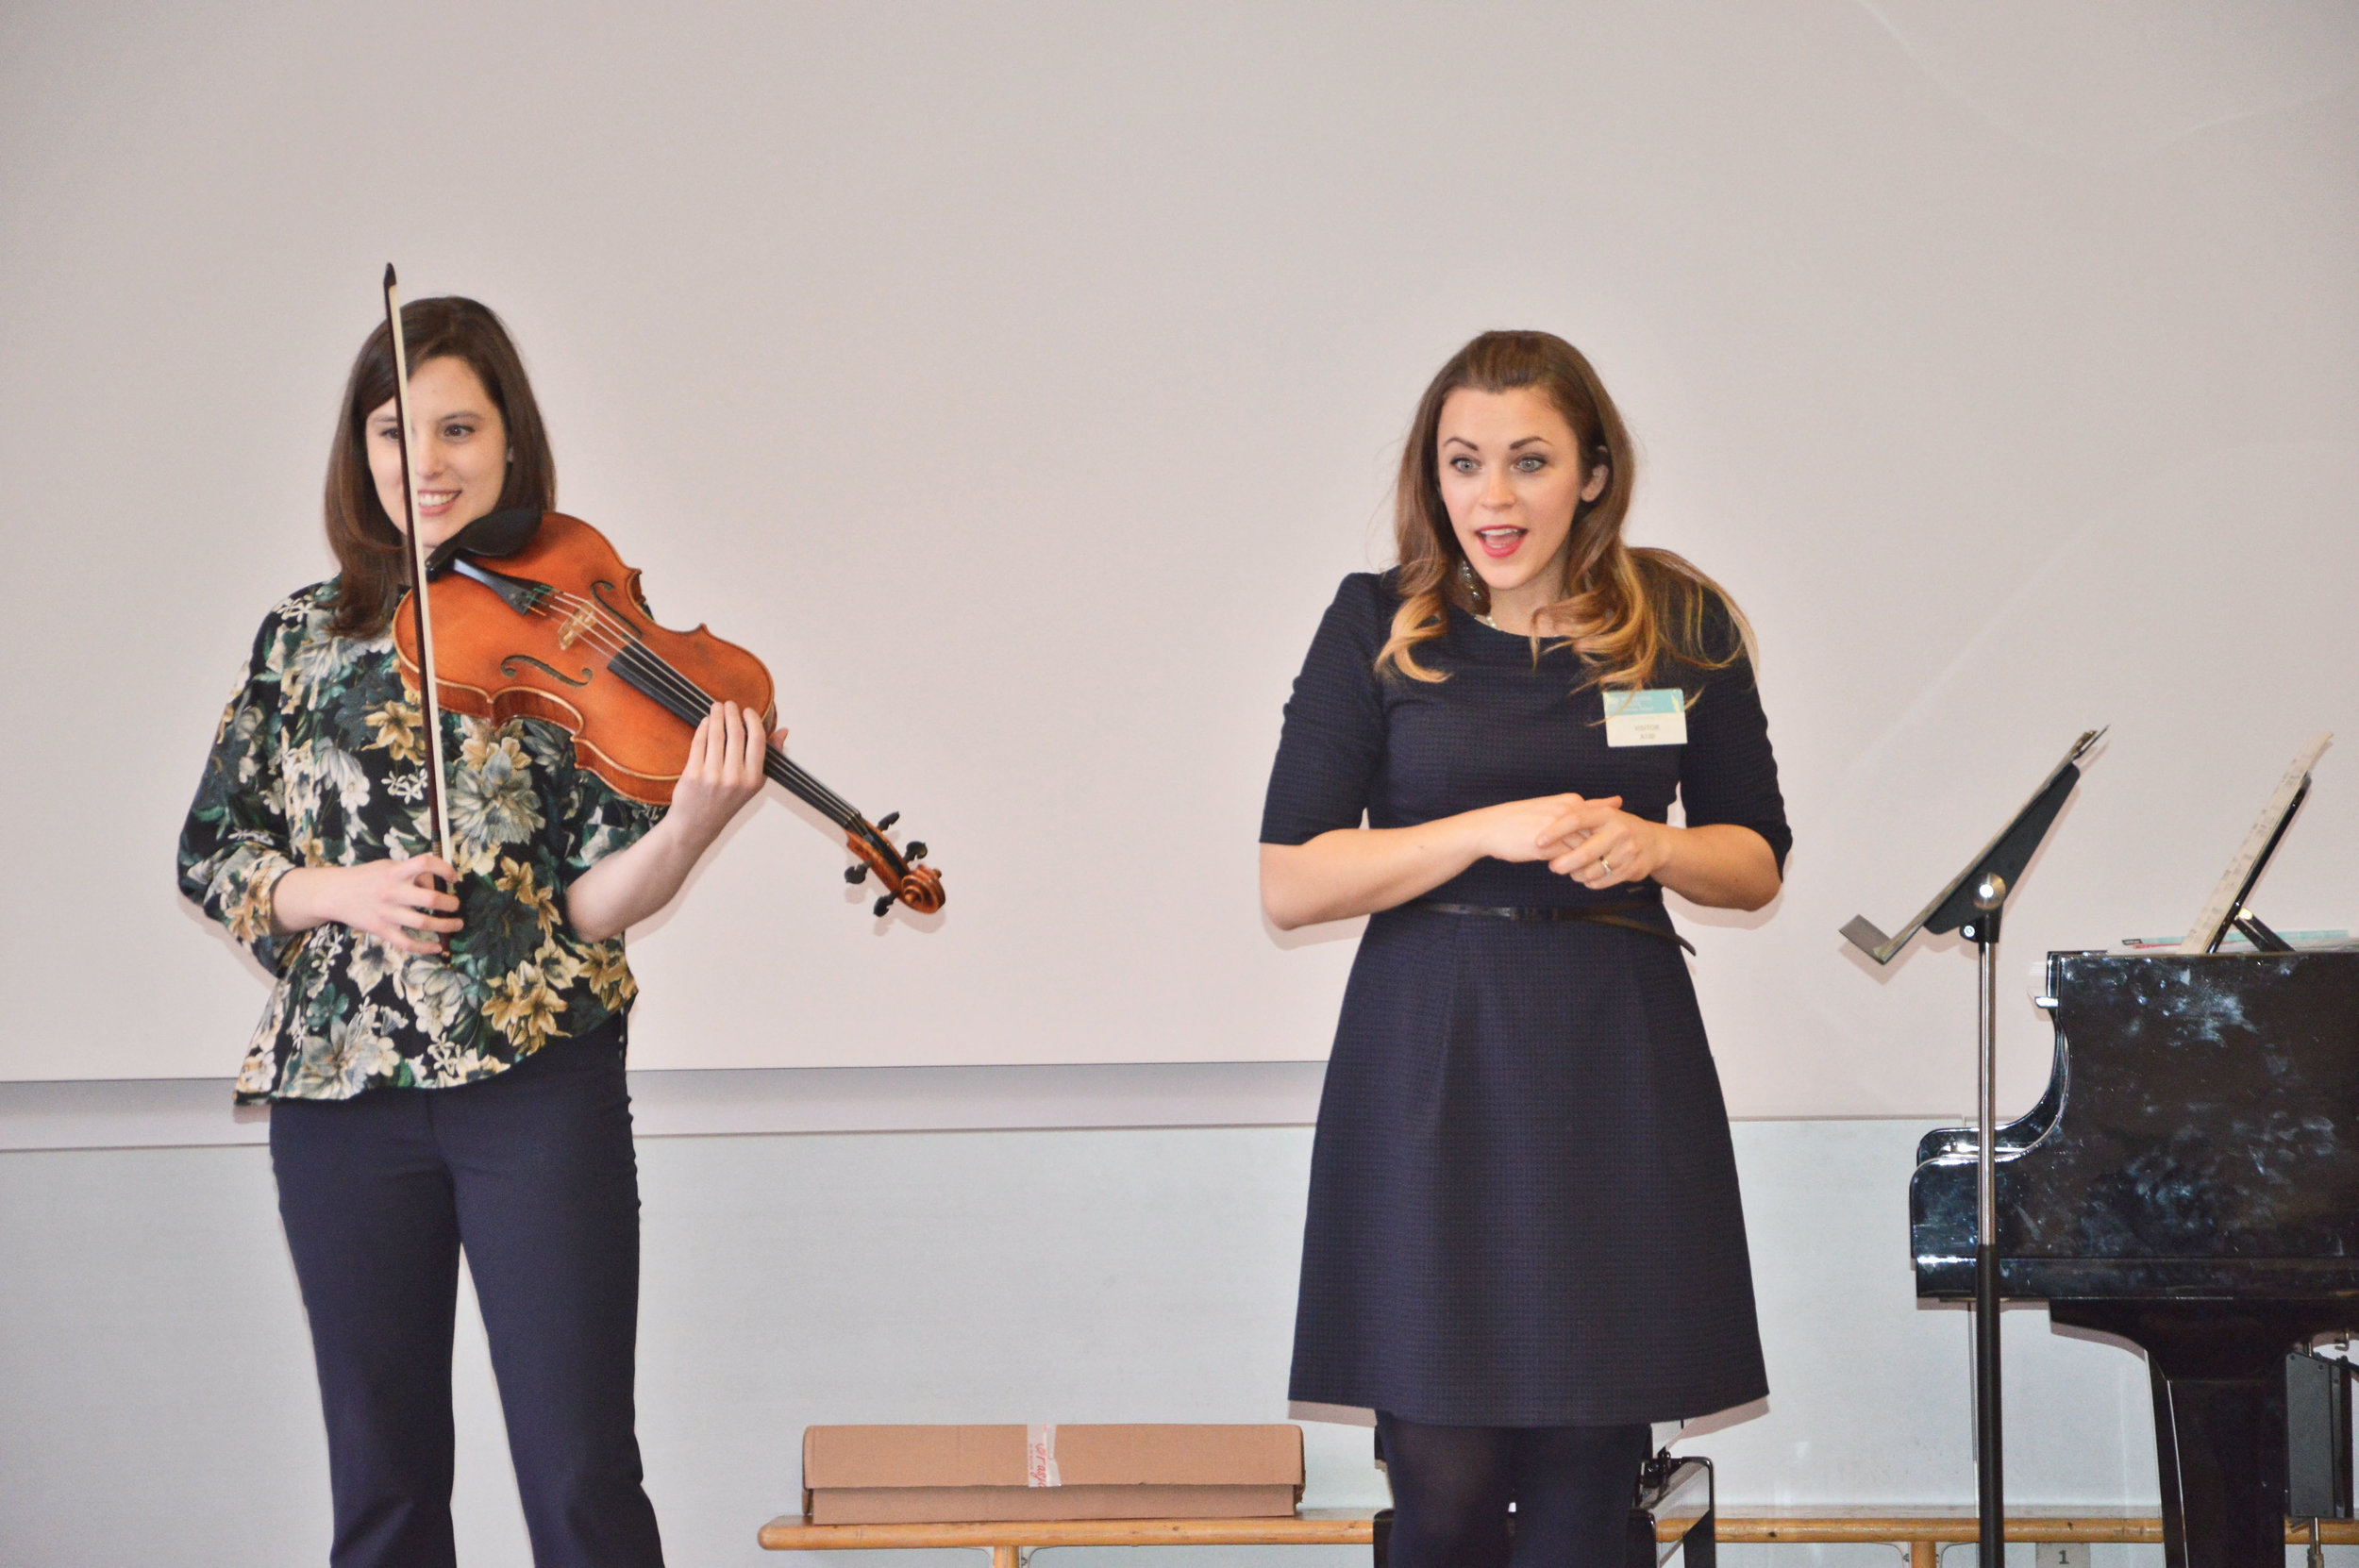 masterclass and performance with violist Deanna Anderson The British International School Warsaw, Poland